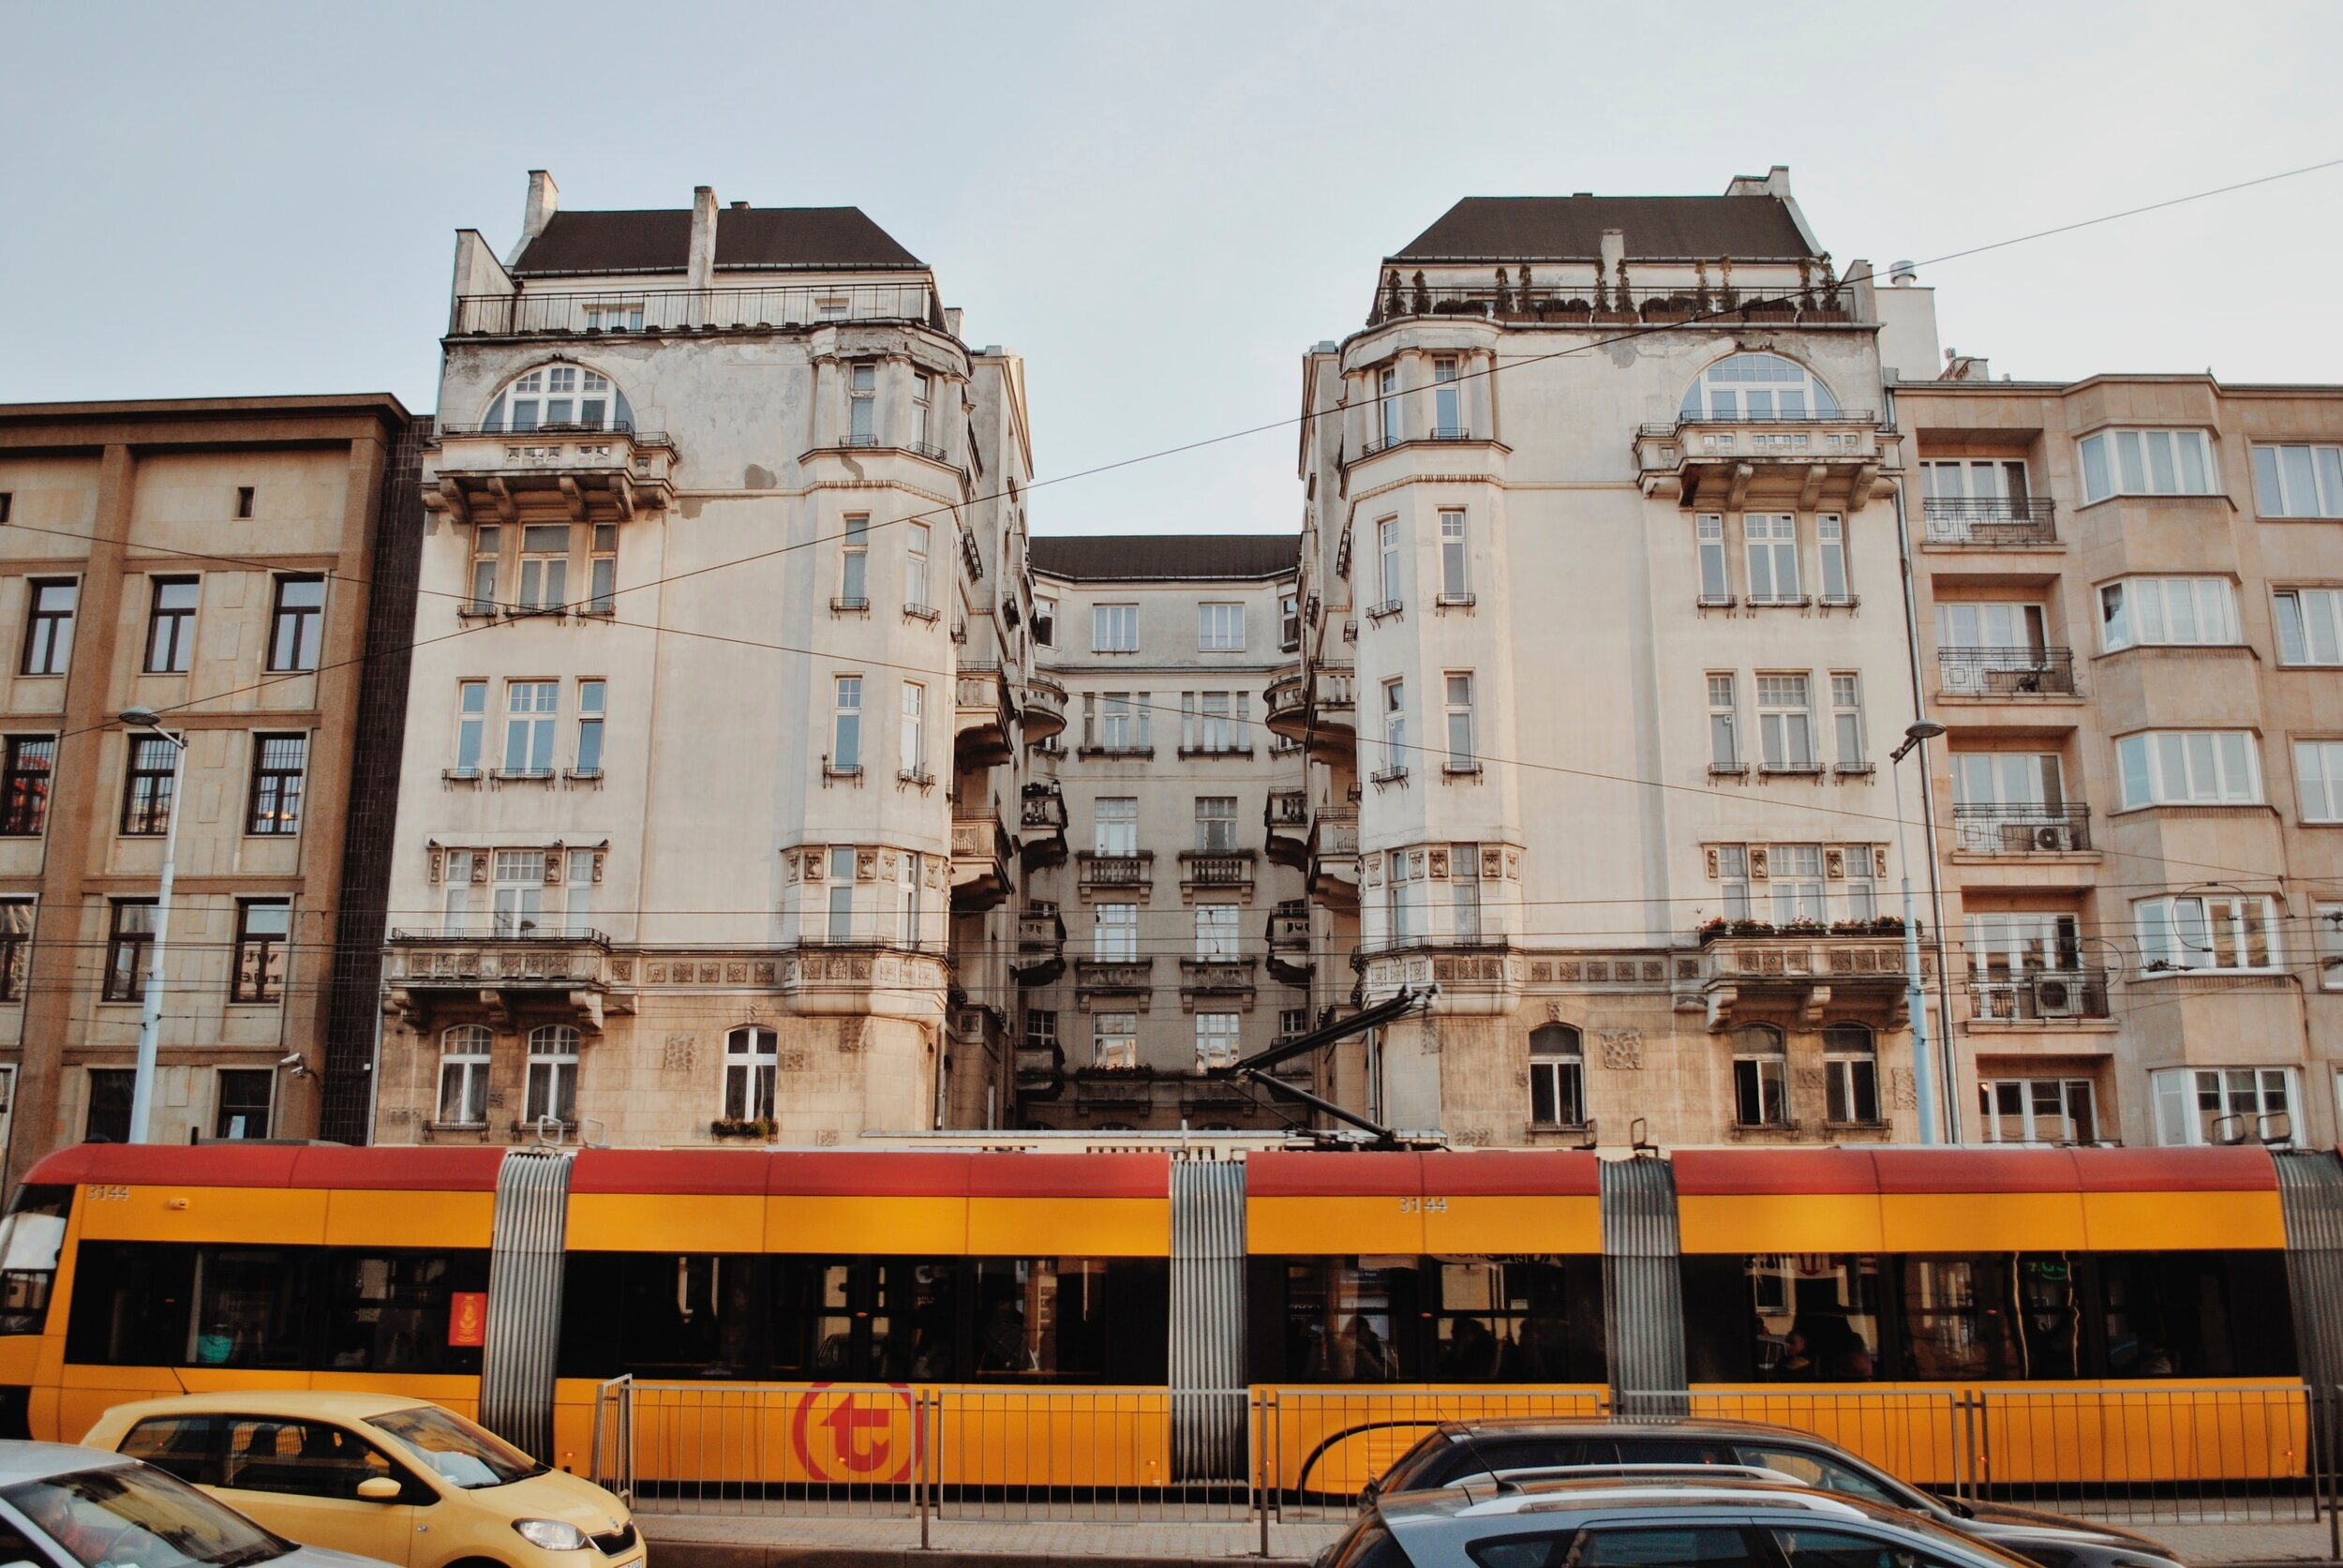 TRAVELING TO Warsaw - Hotel and travel information